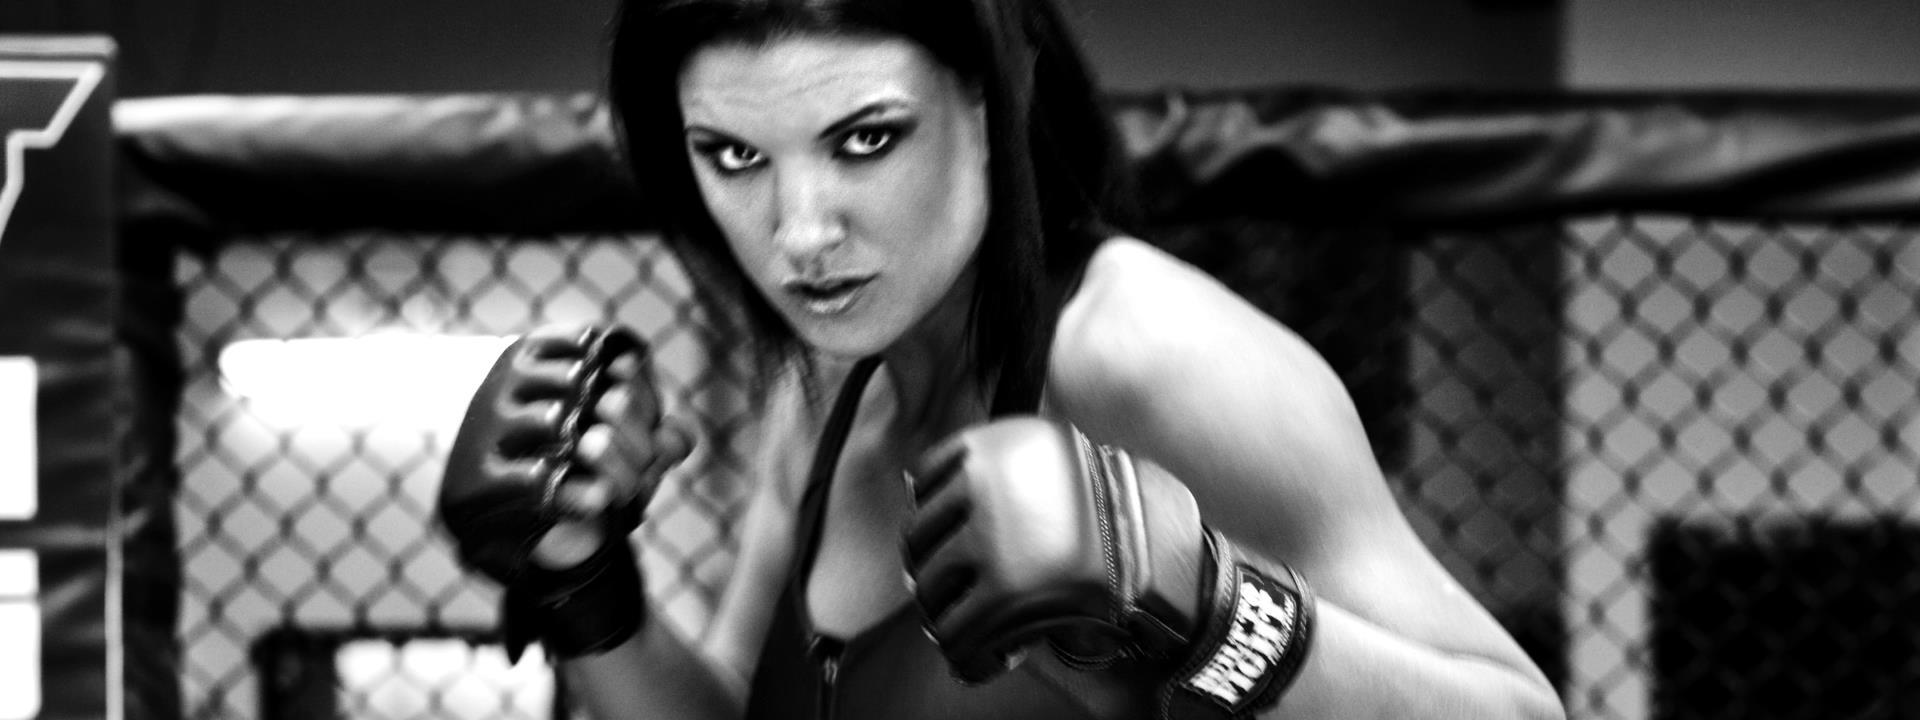 Gina carano diet plan and workout routine healthy celeb - Q A With Gina Carano